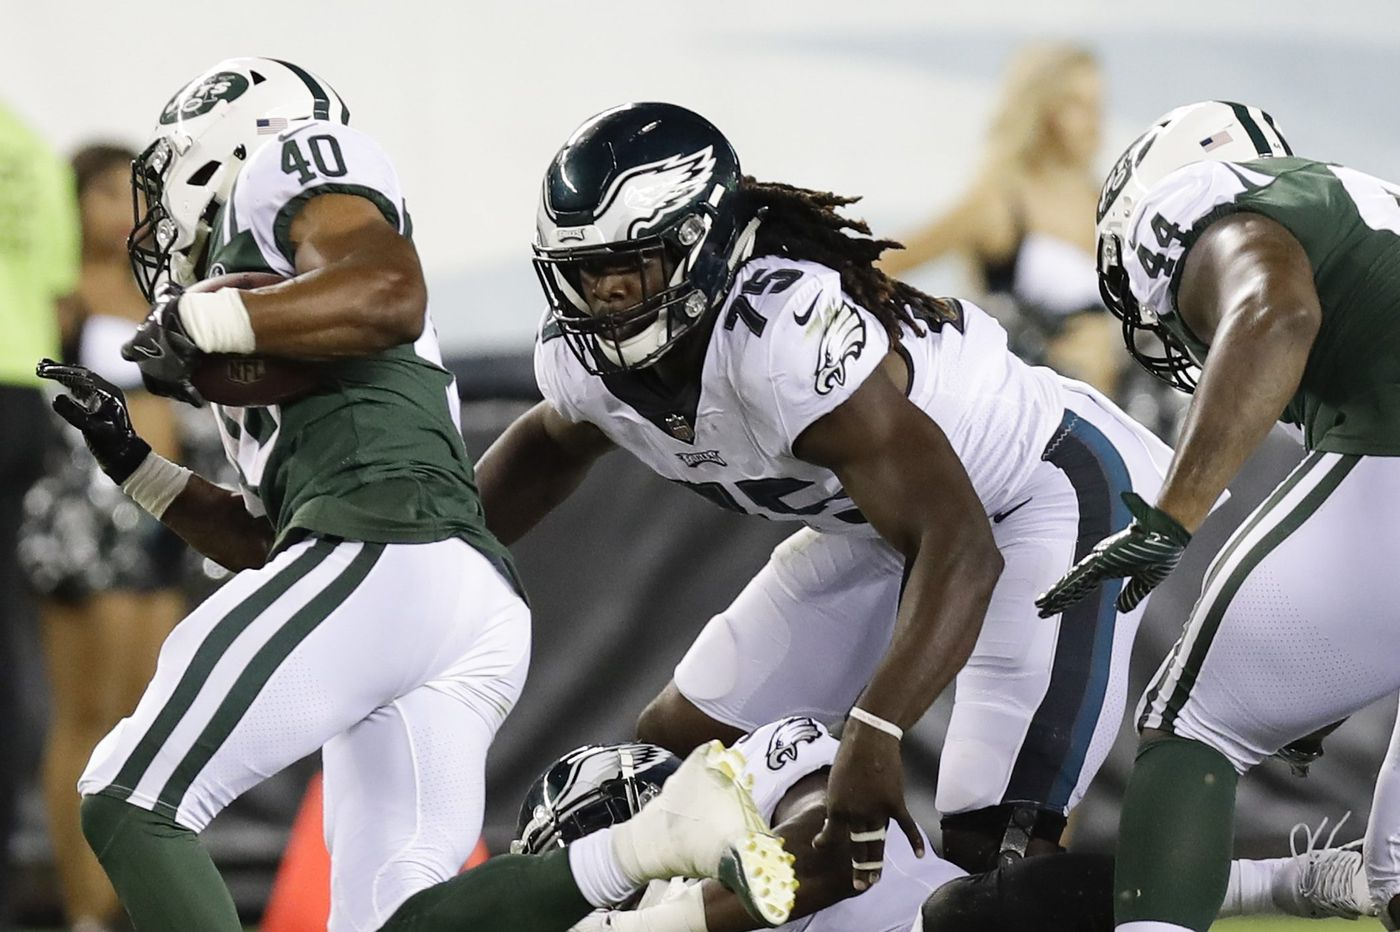 With Derek Barnett out, Eagles rookie Josh Sweat's chance has come